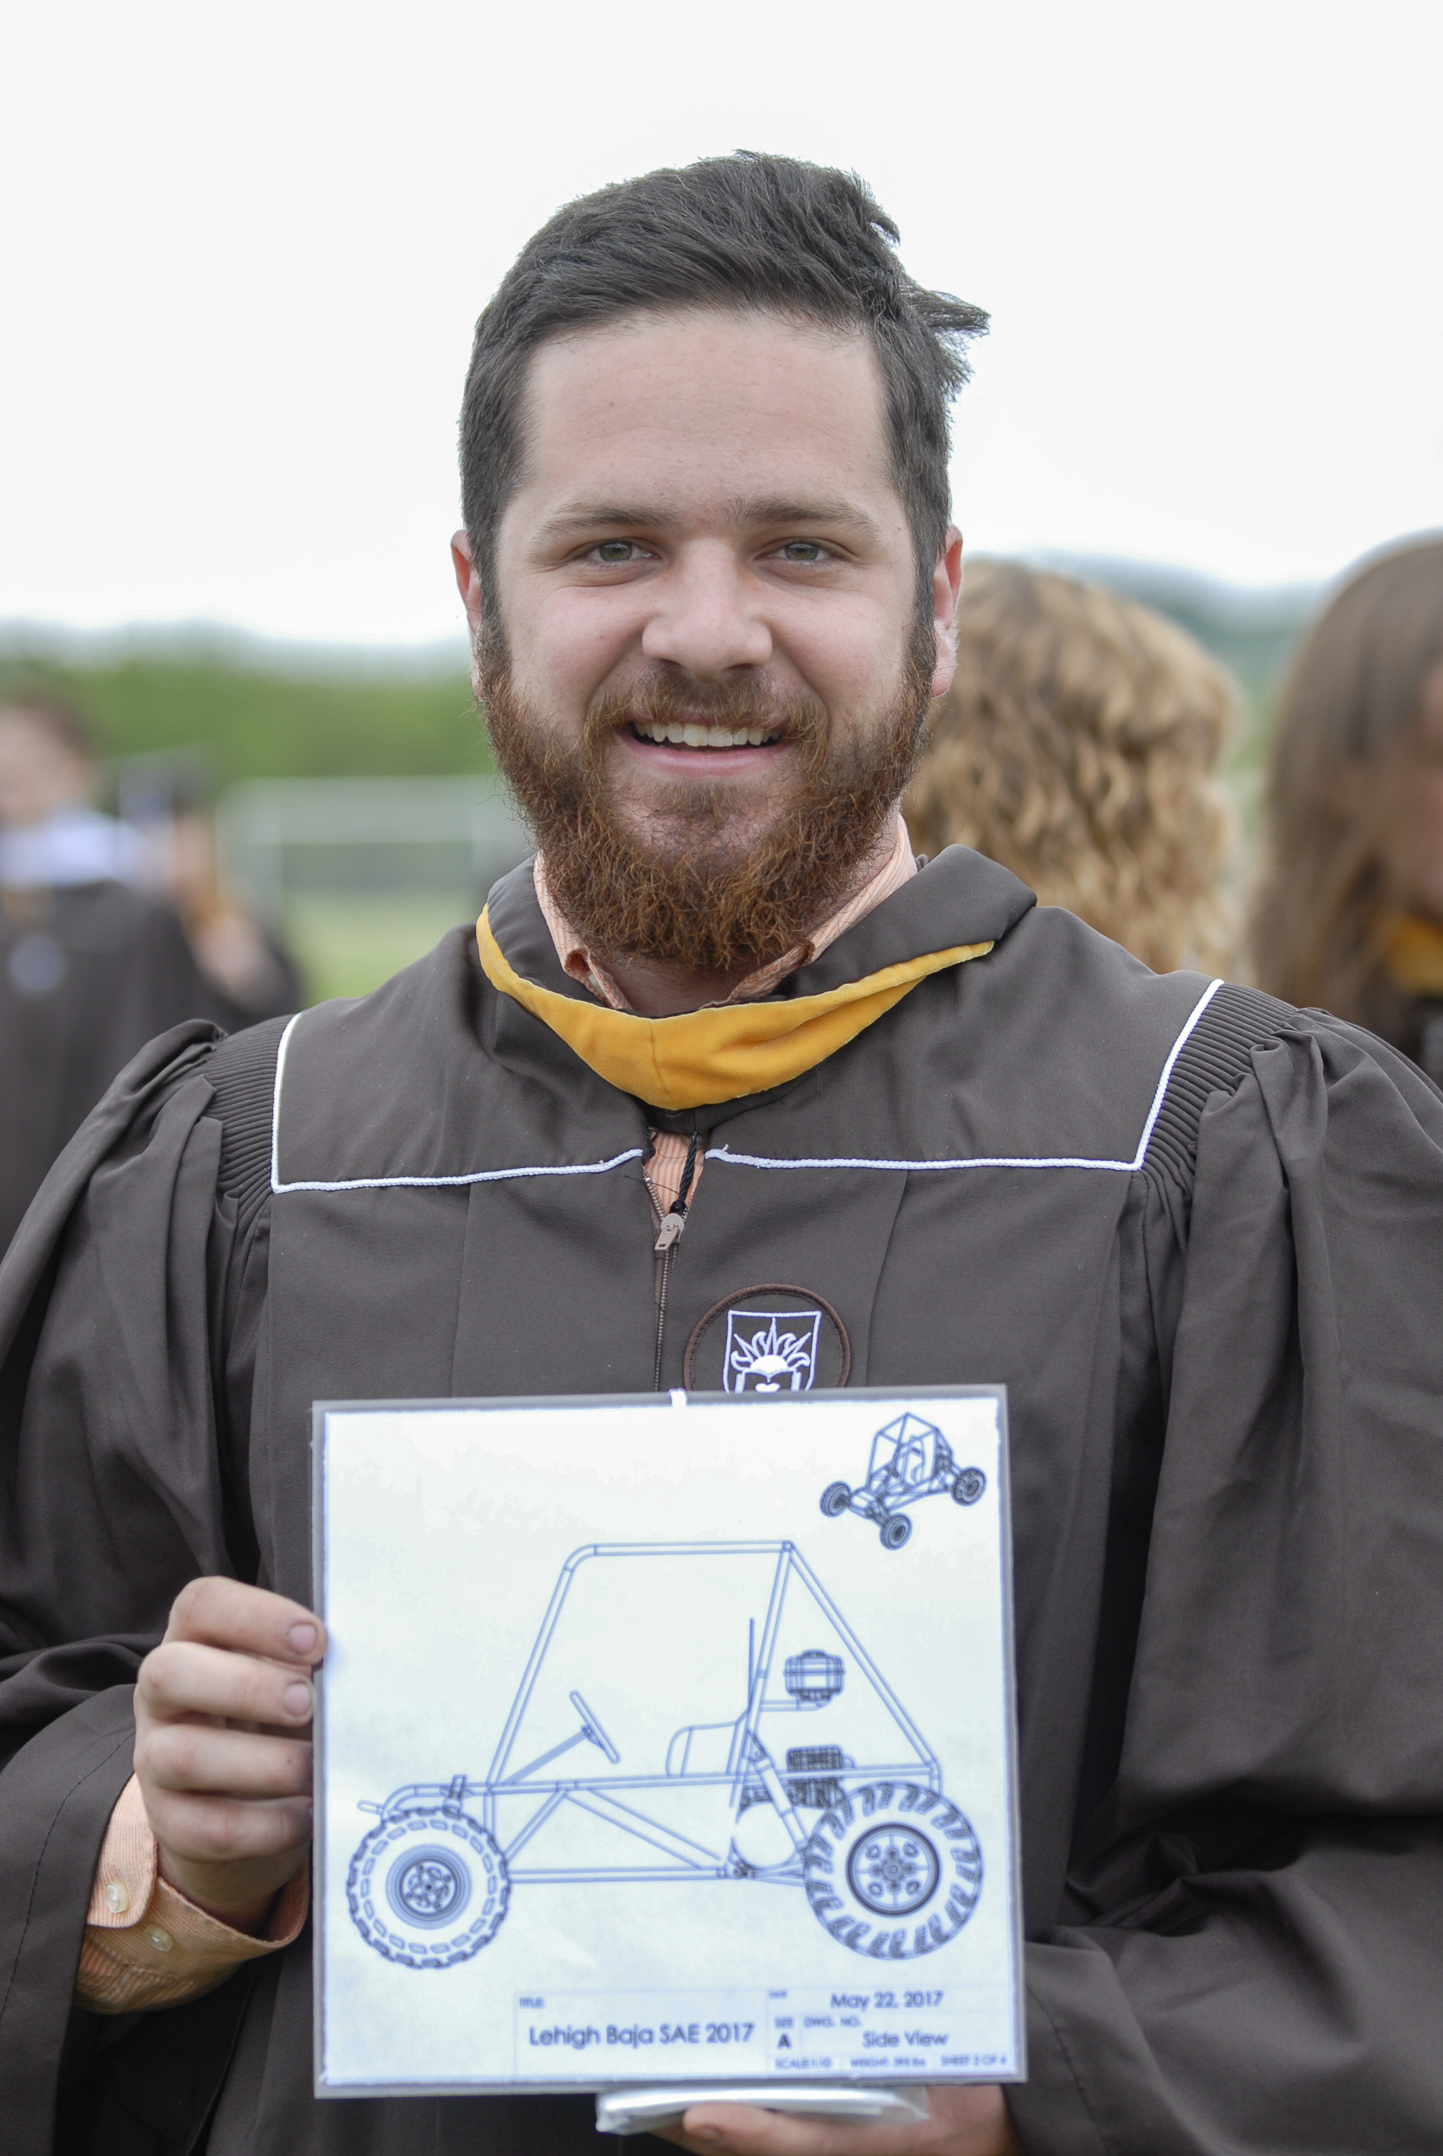 Harry Ambler, '17, a member of the Baja Society of Automotive Engineers, holds his graduation cap decorated with the schematics of the Baja team's car on Monday, May 22, 2017, outside Goodman Stadium. Ambler graduated with a degree in mechanical engineering with an aerospace minor. (Roshan Giyanani/B&W Staff)